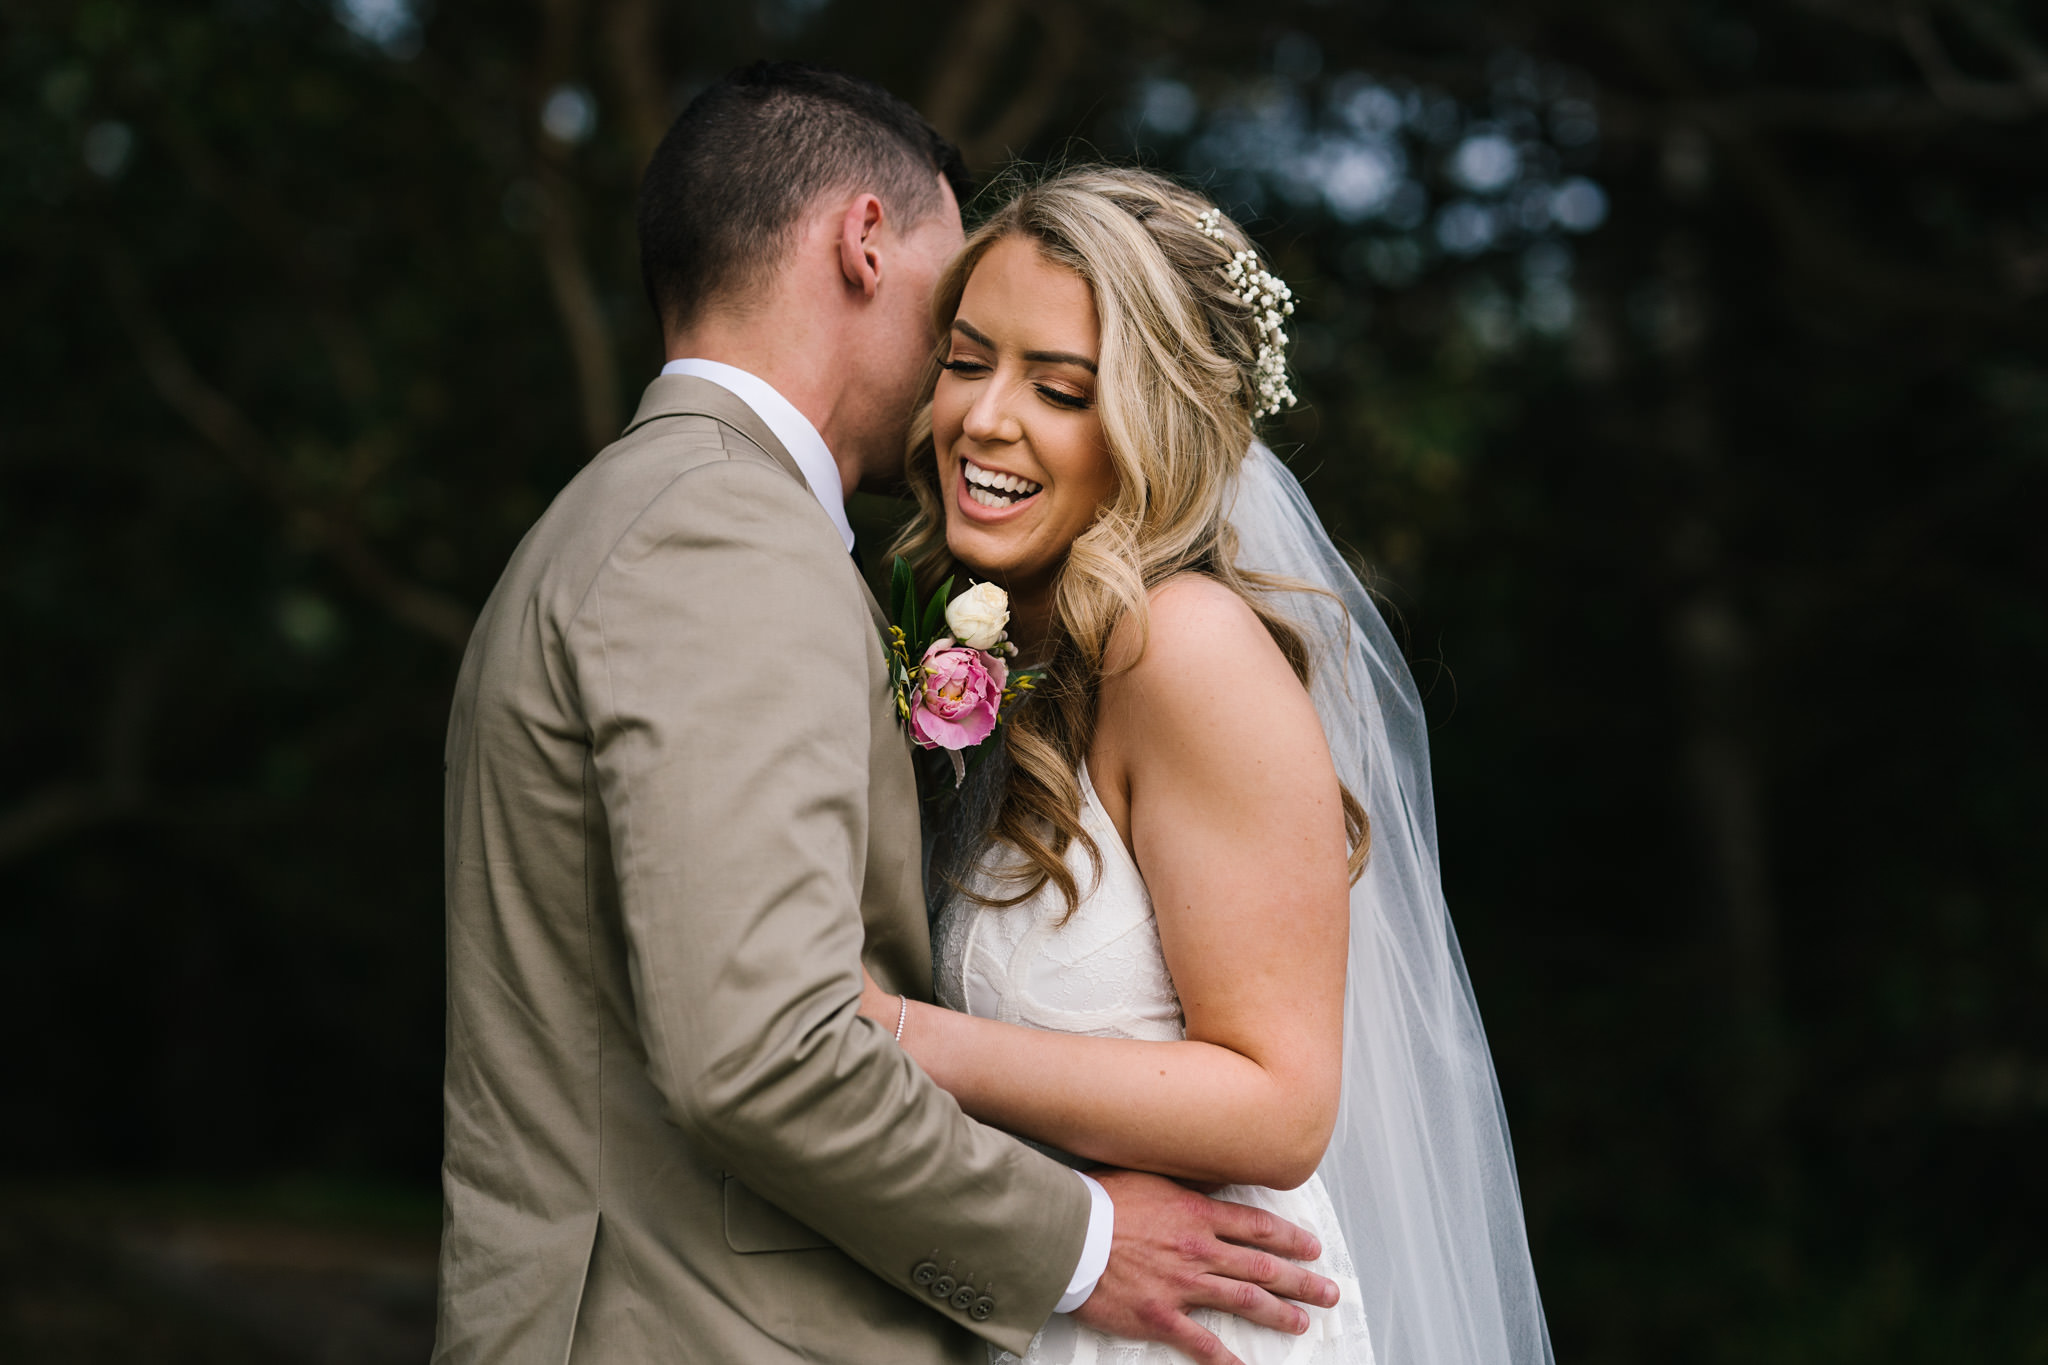 Bride smiling as groom embraces her